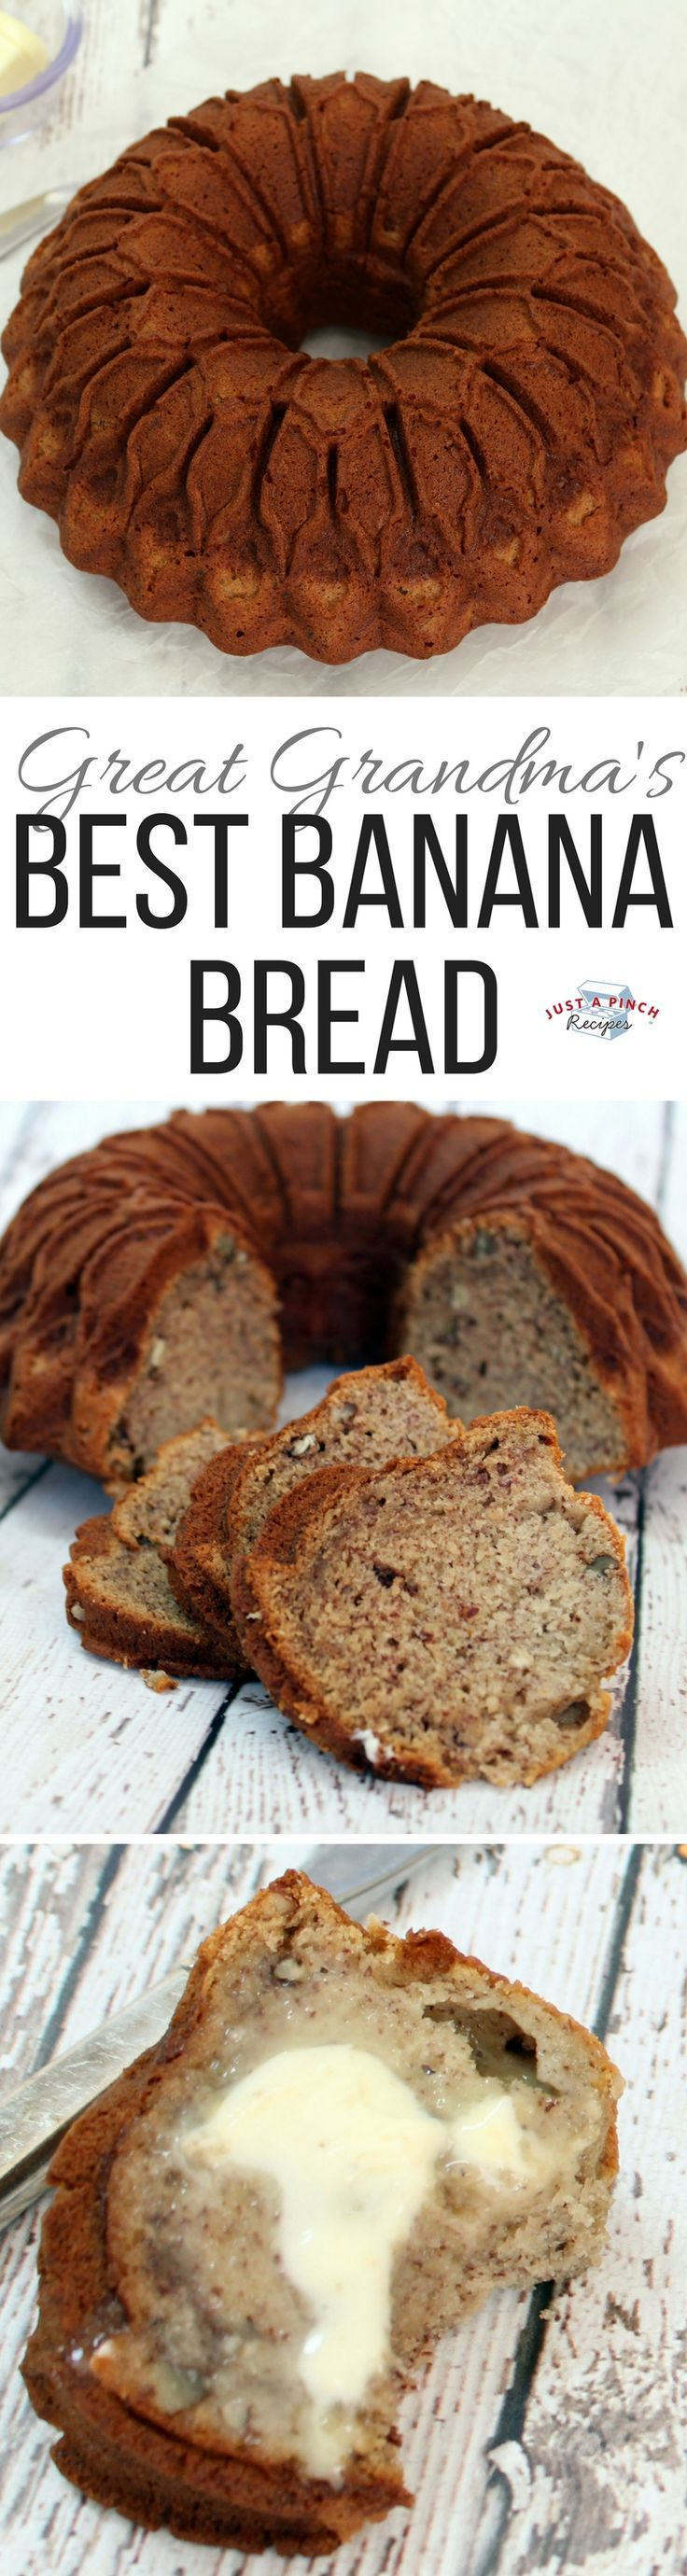 This banana bread is easy, moist, delicious and full of banana flavor. I like the idea of using a bundt pan. #bananabread #easybananabread #bundtpan #breadrecipe #homemadebread